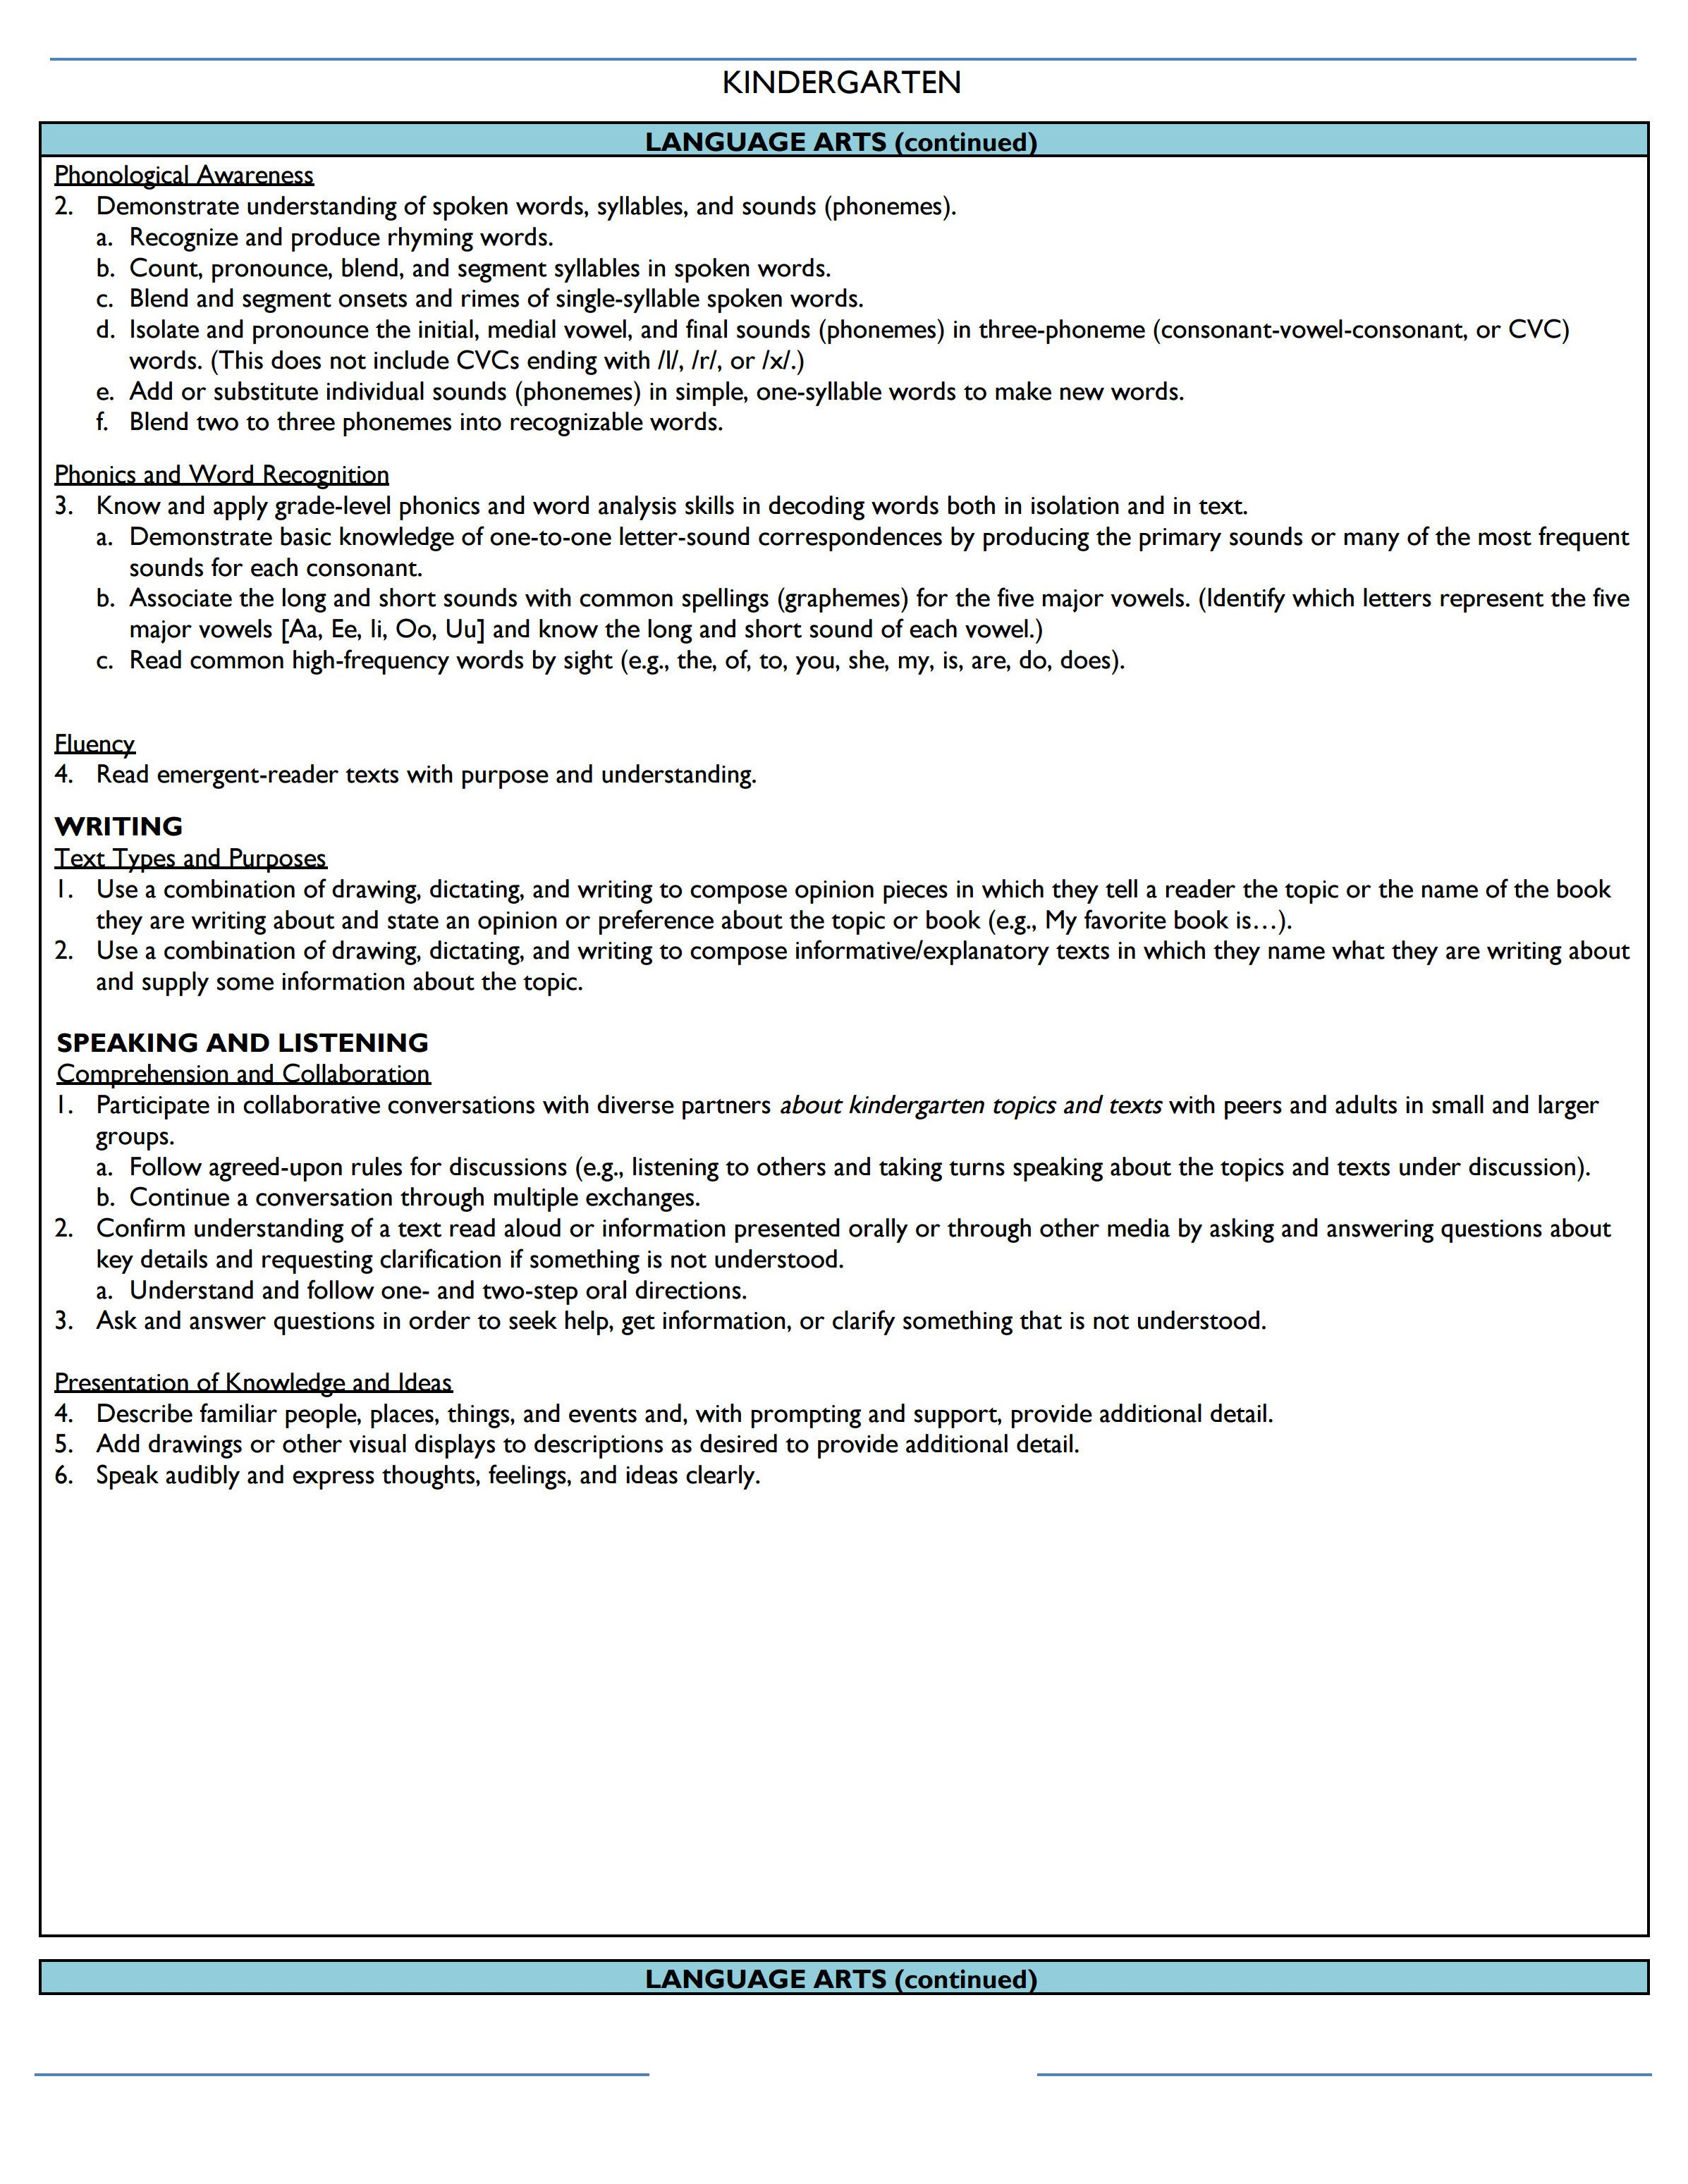 Ms. Amy's Covered TK_K California Standards.doc-2.jpg